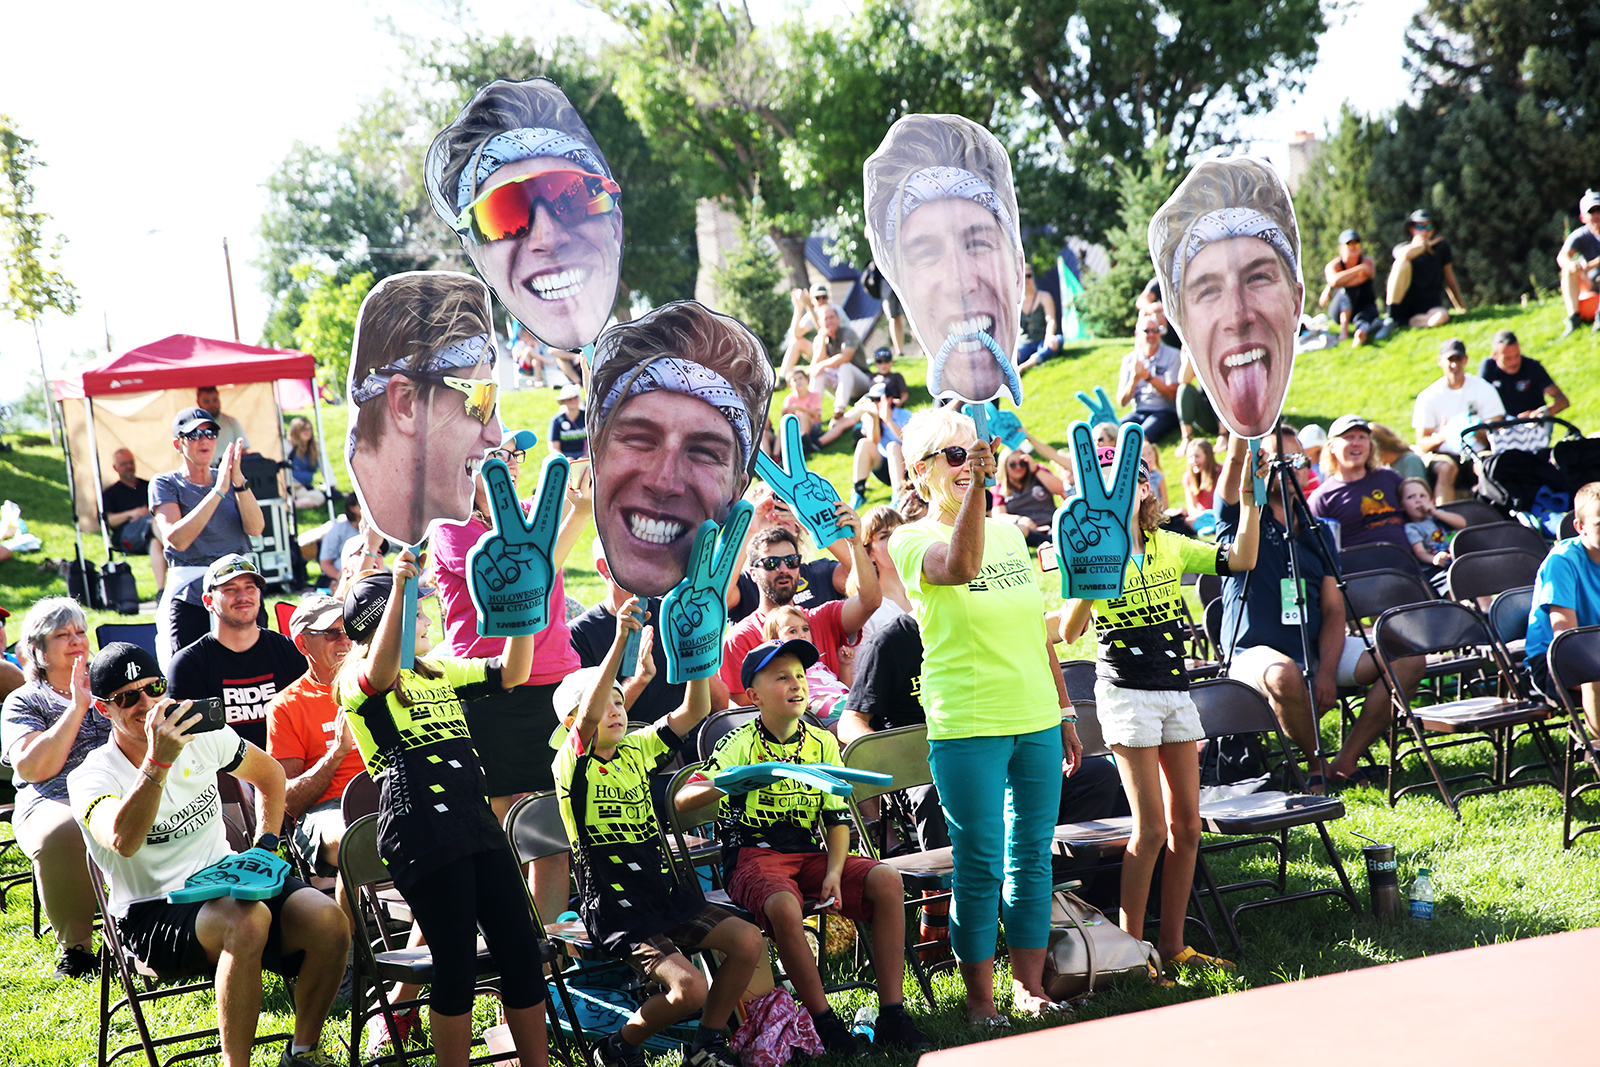 As in the last few years, the Eisenhart family were out in full force to cheer on Utah rider TJ Eisenhart of Holowesko/Citadel P/B Araphaoe Resources. 2018 Tour of Utah Team Presentation, August 4, 2018, Cedar City, Utah. Photo by Cathy Fegan-Kim, cottonsoxphotography.net